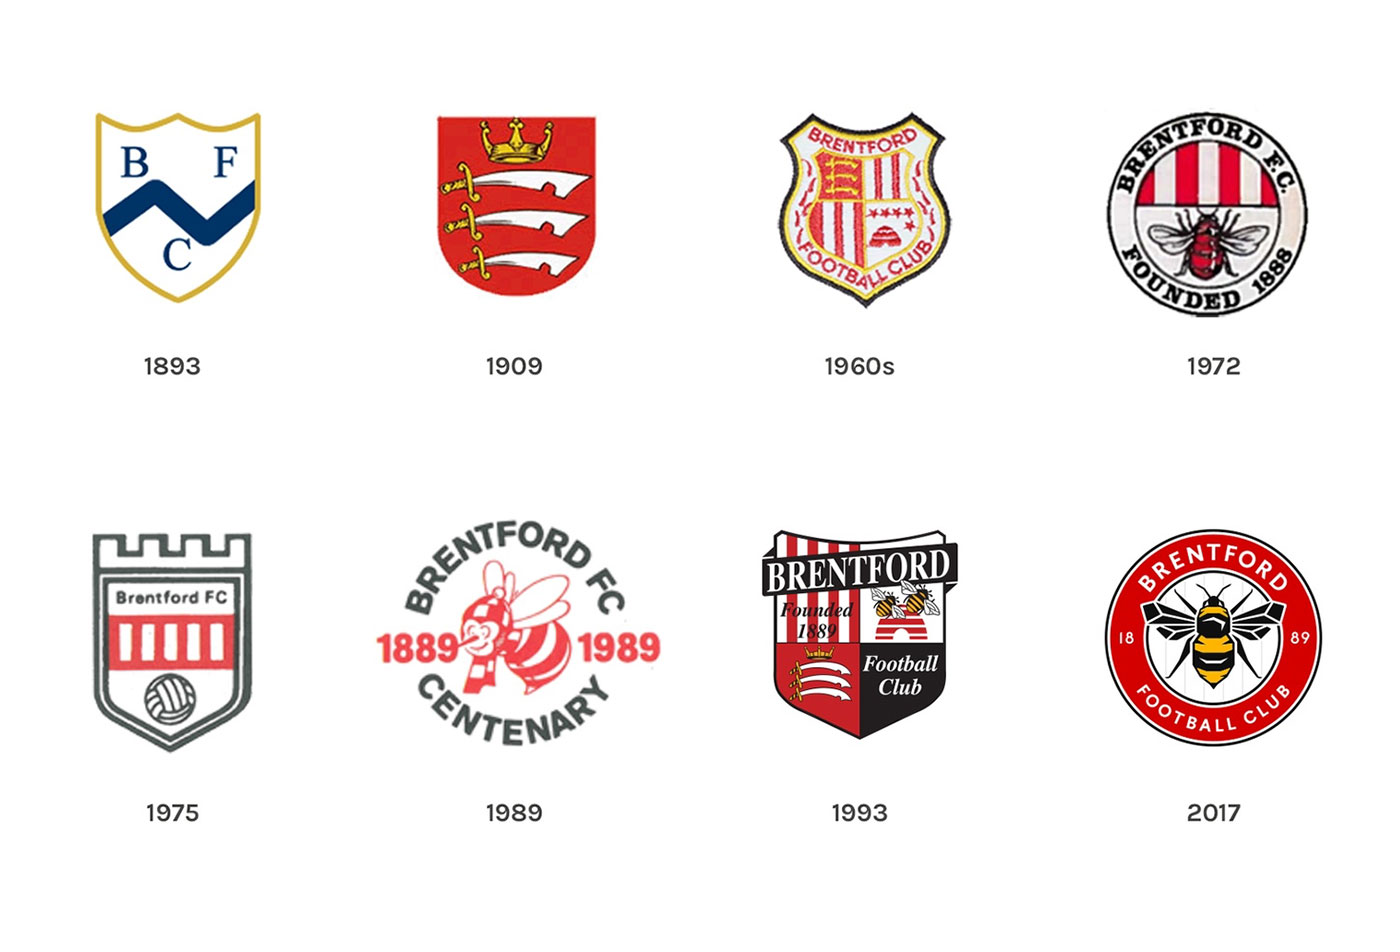 Brentford FC crest evolution